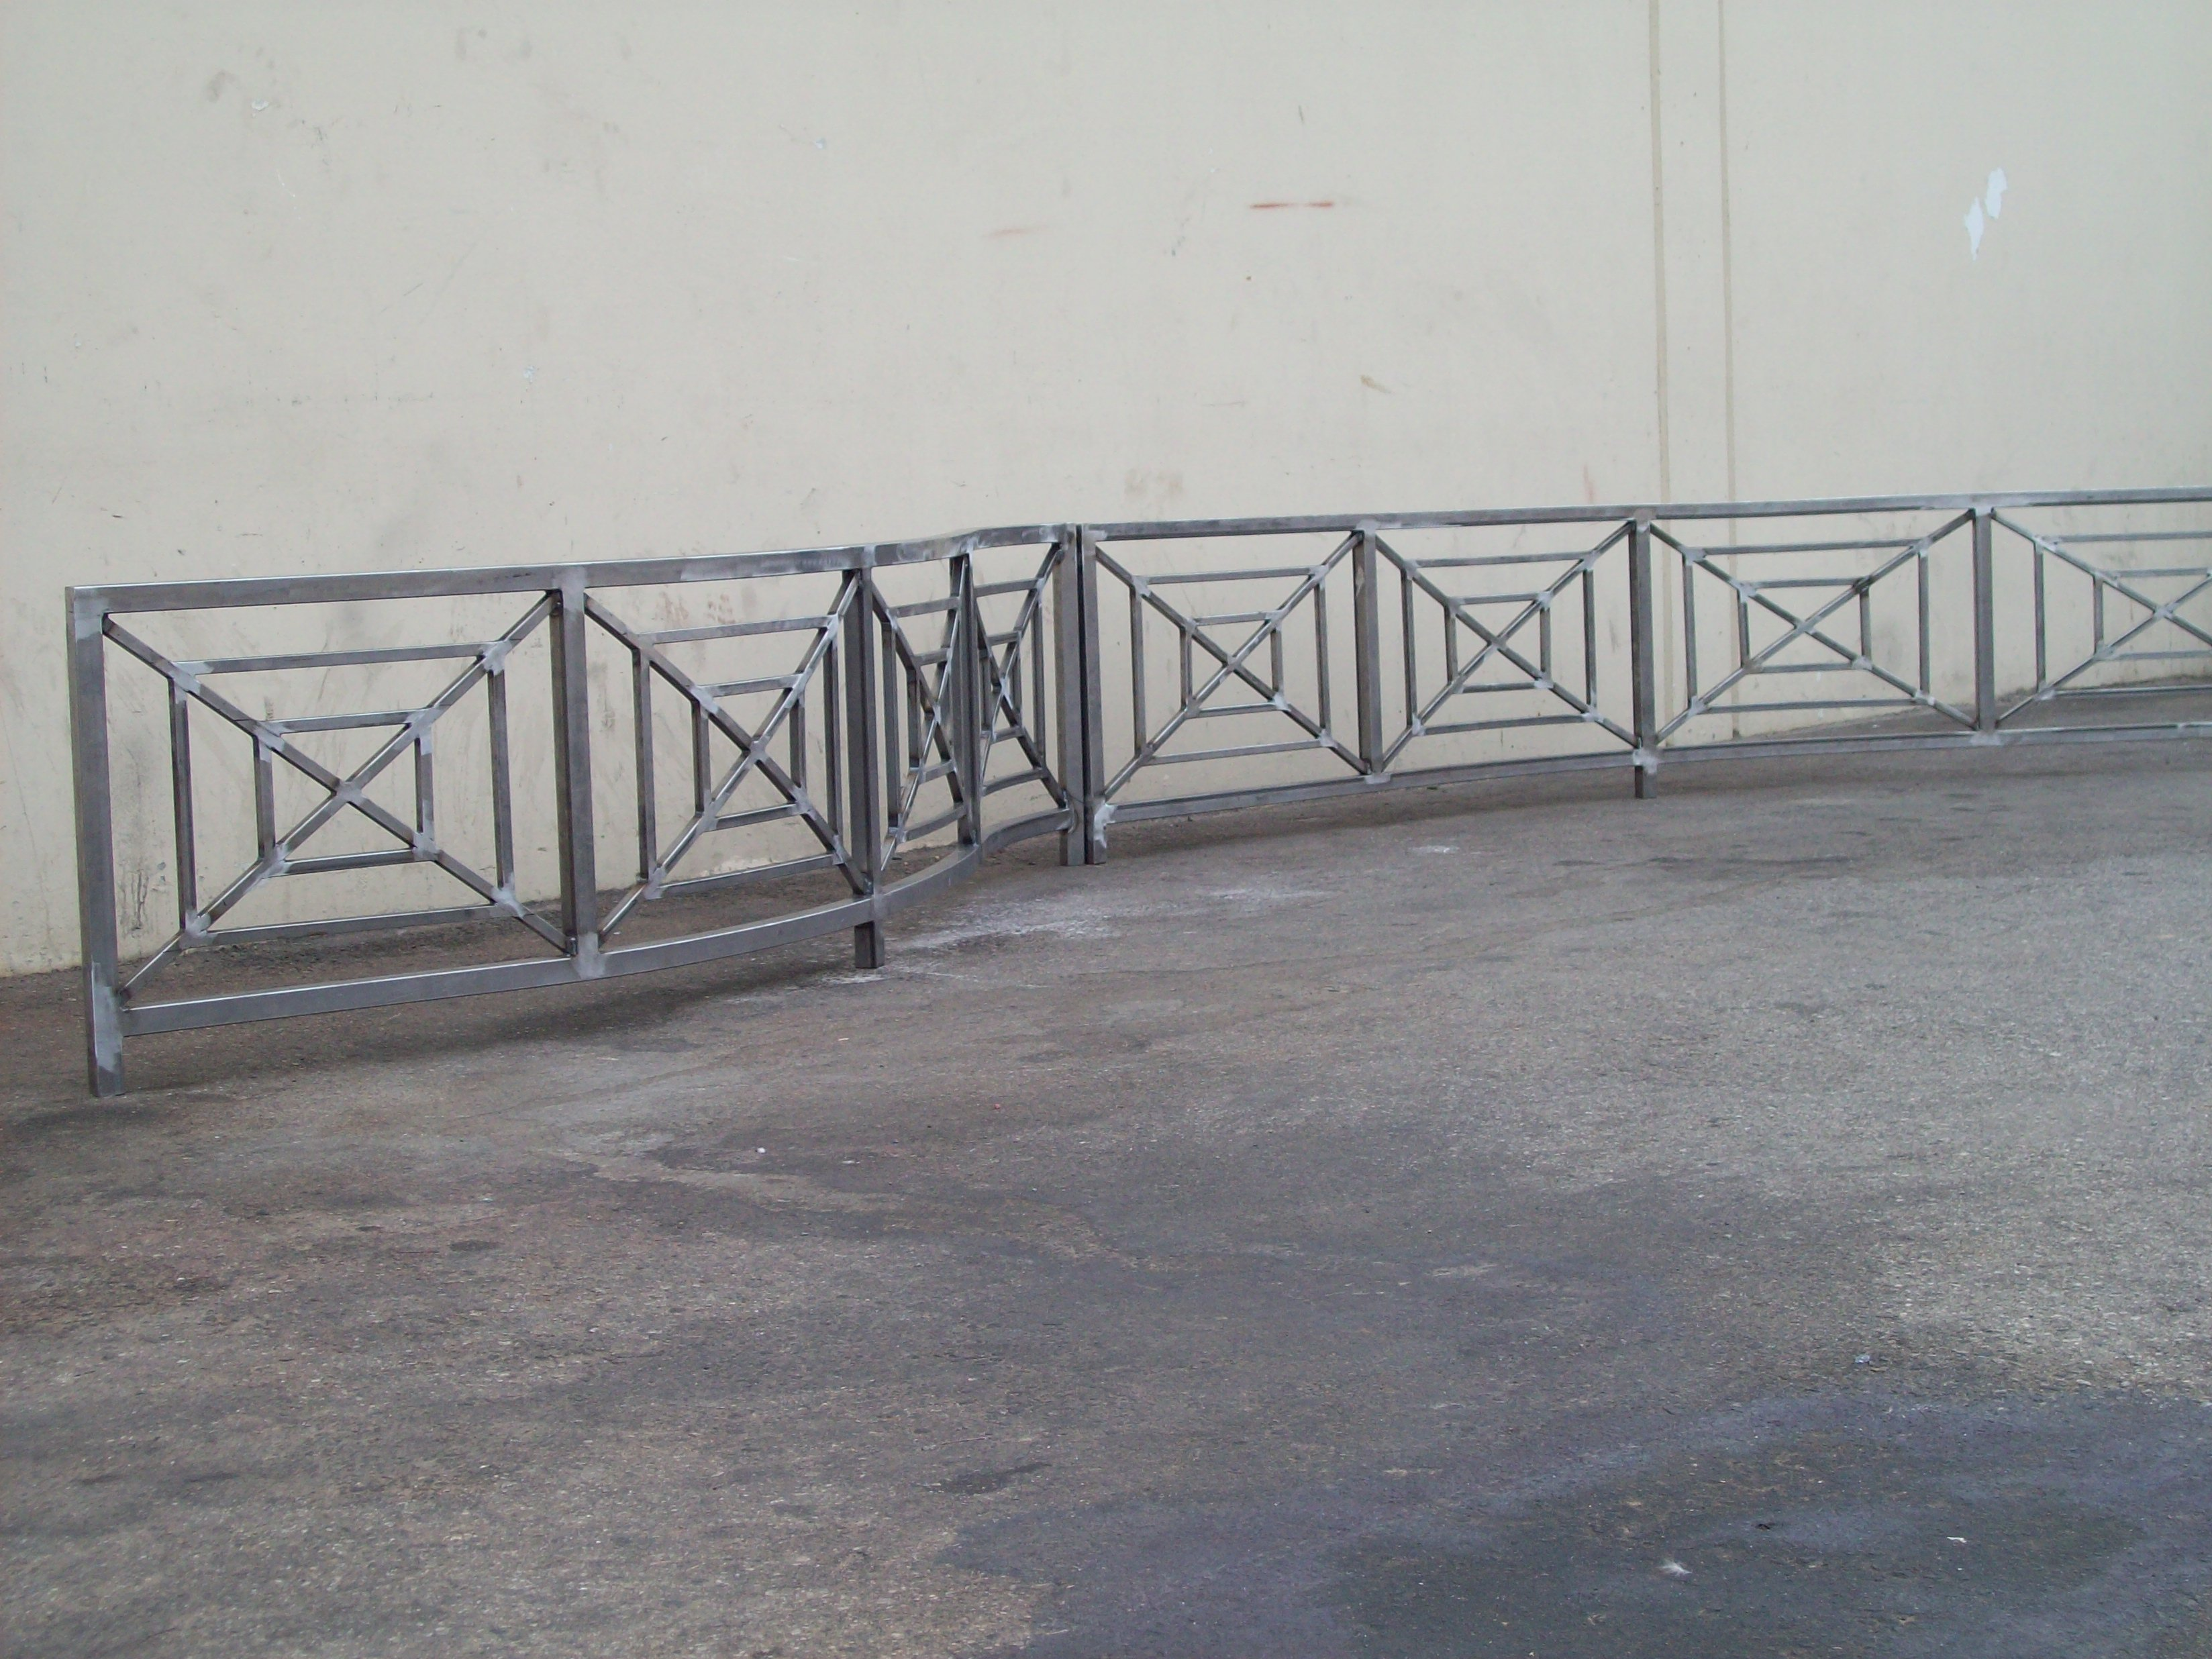 Fence V & M Iron works inc in the San Jose Bay Area